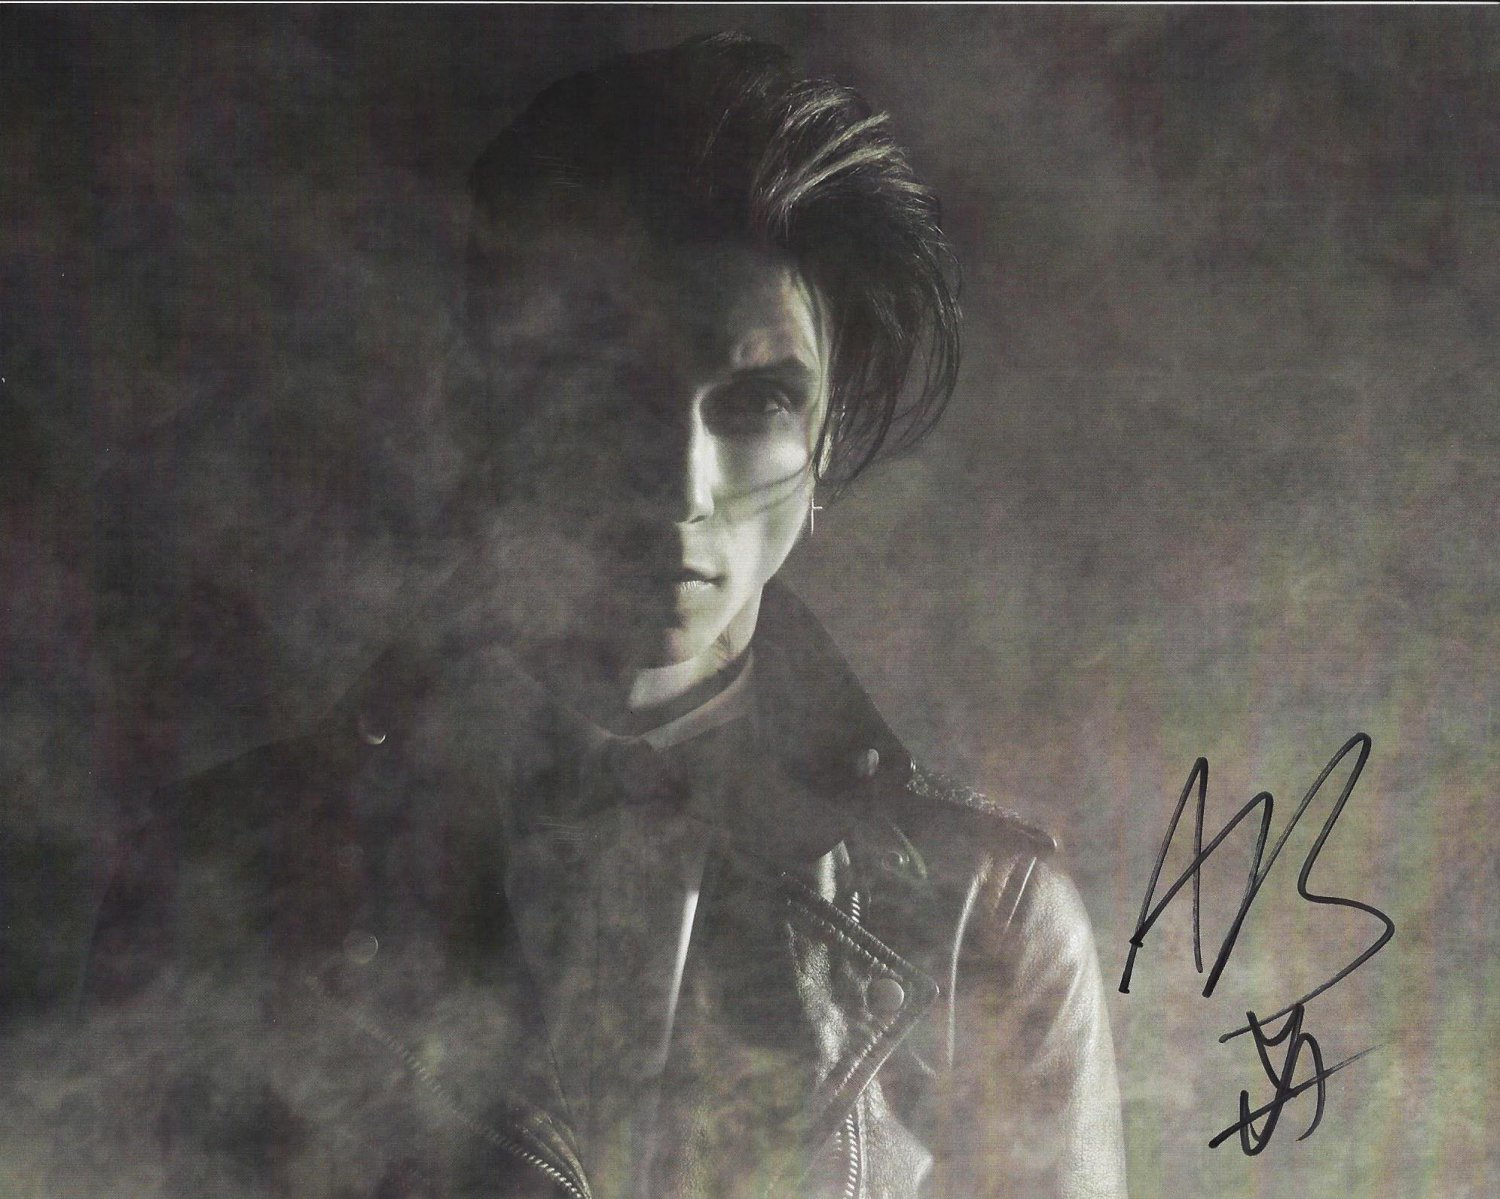 "Andy Biersack Black Veil Brides 8 x 10"" Autographed Photo -(Reprint:2361) Great Gift Idea"